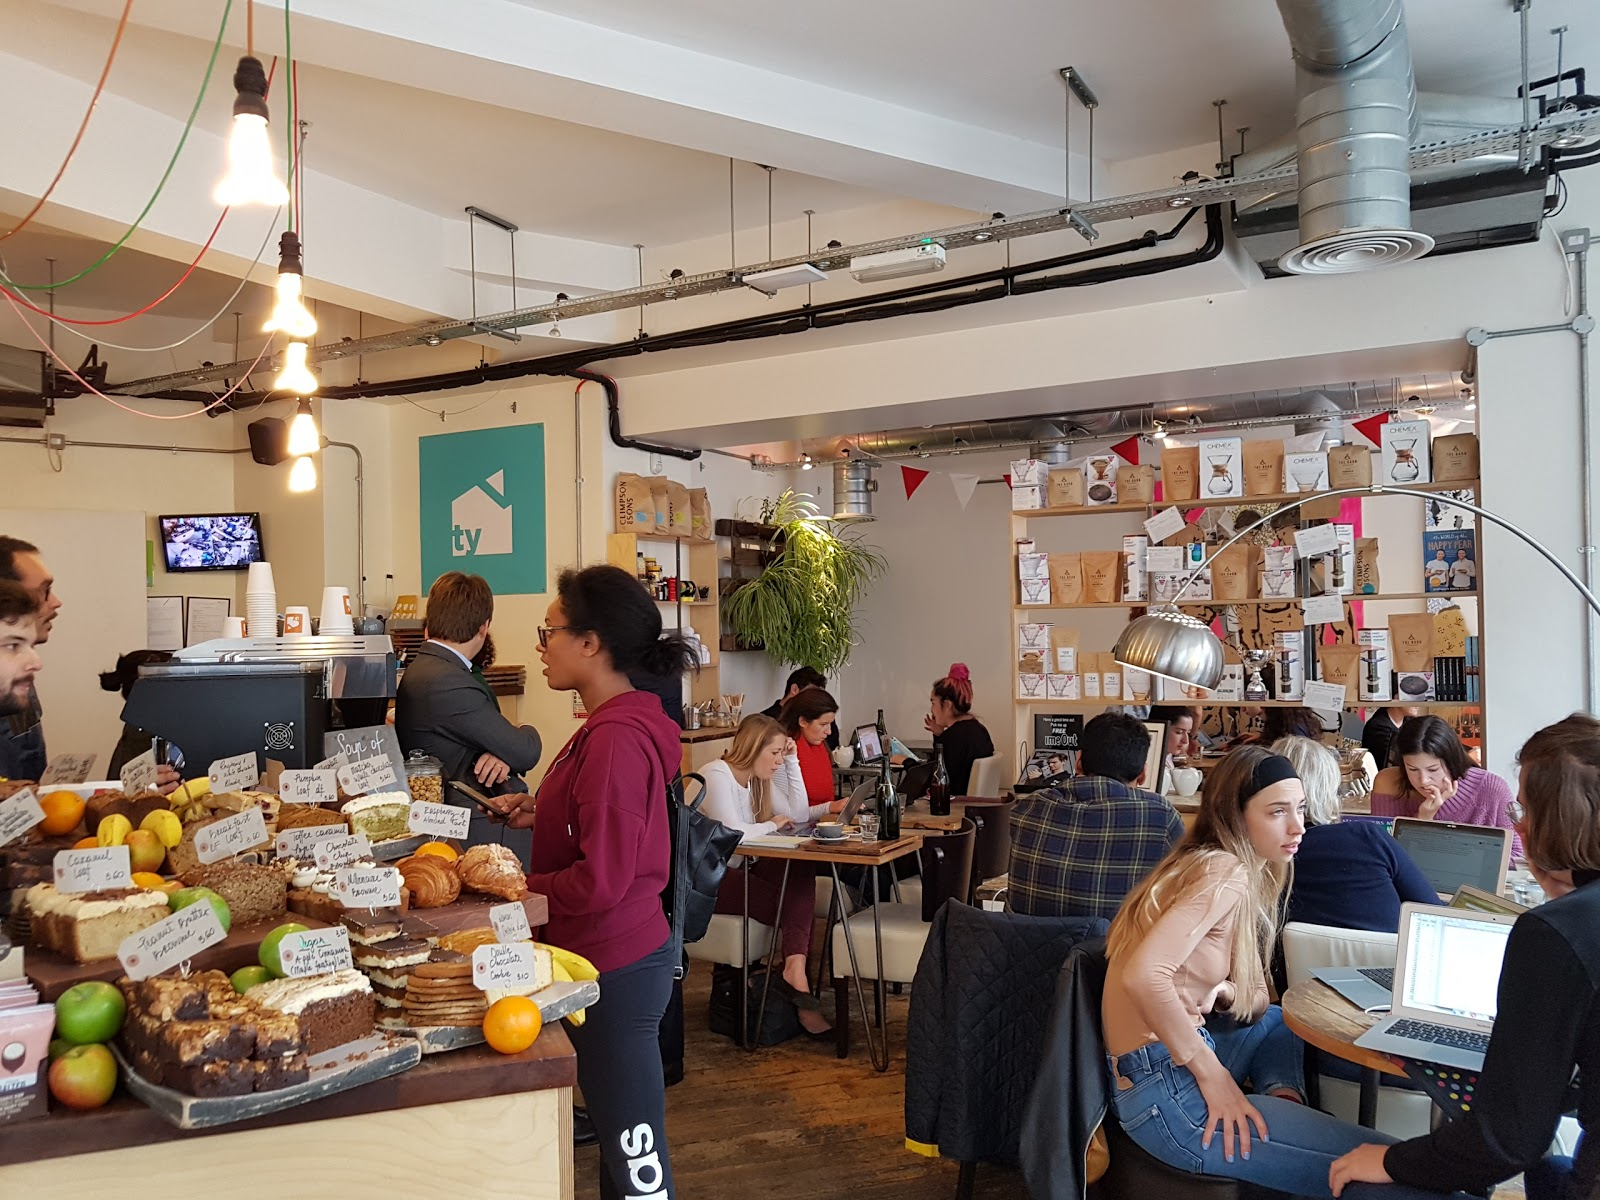 TY Seven Dials: A Work-Friendly Place in London